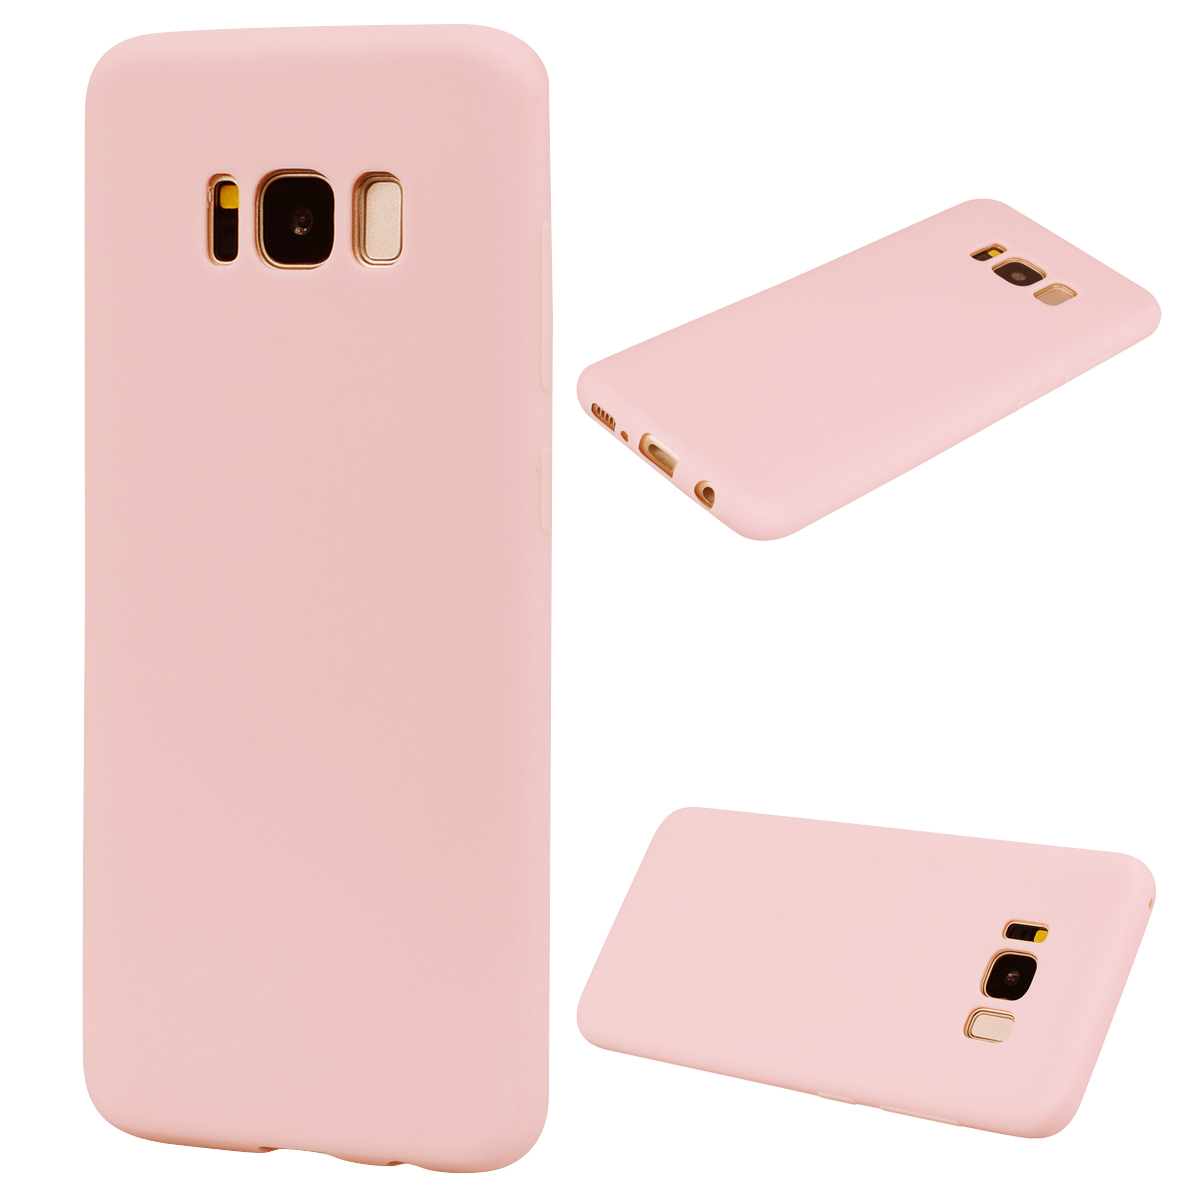 for Samsung S8 plus Lovely Candy Color Matte TPU Anti-scratch Non-slip Protective Cover Back Case Light pink